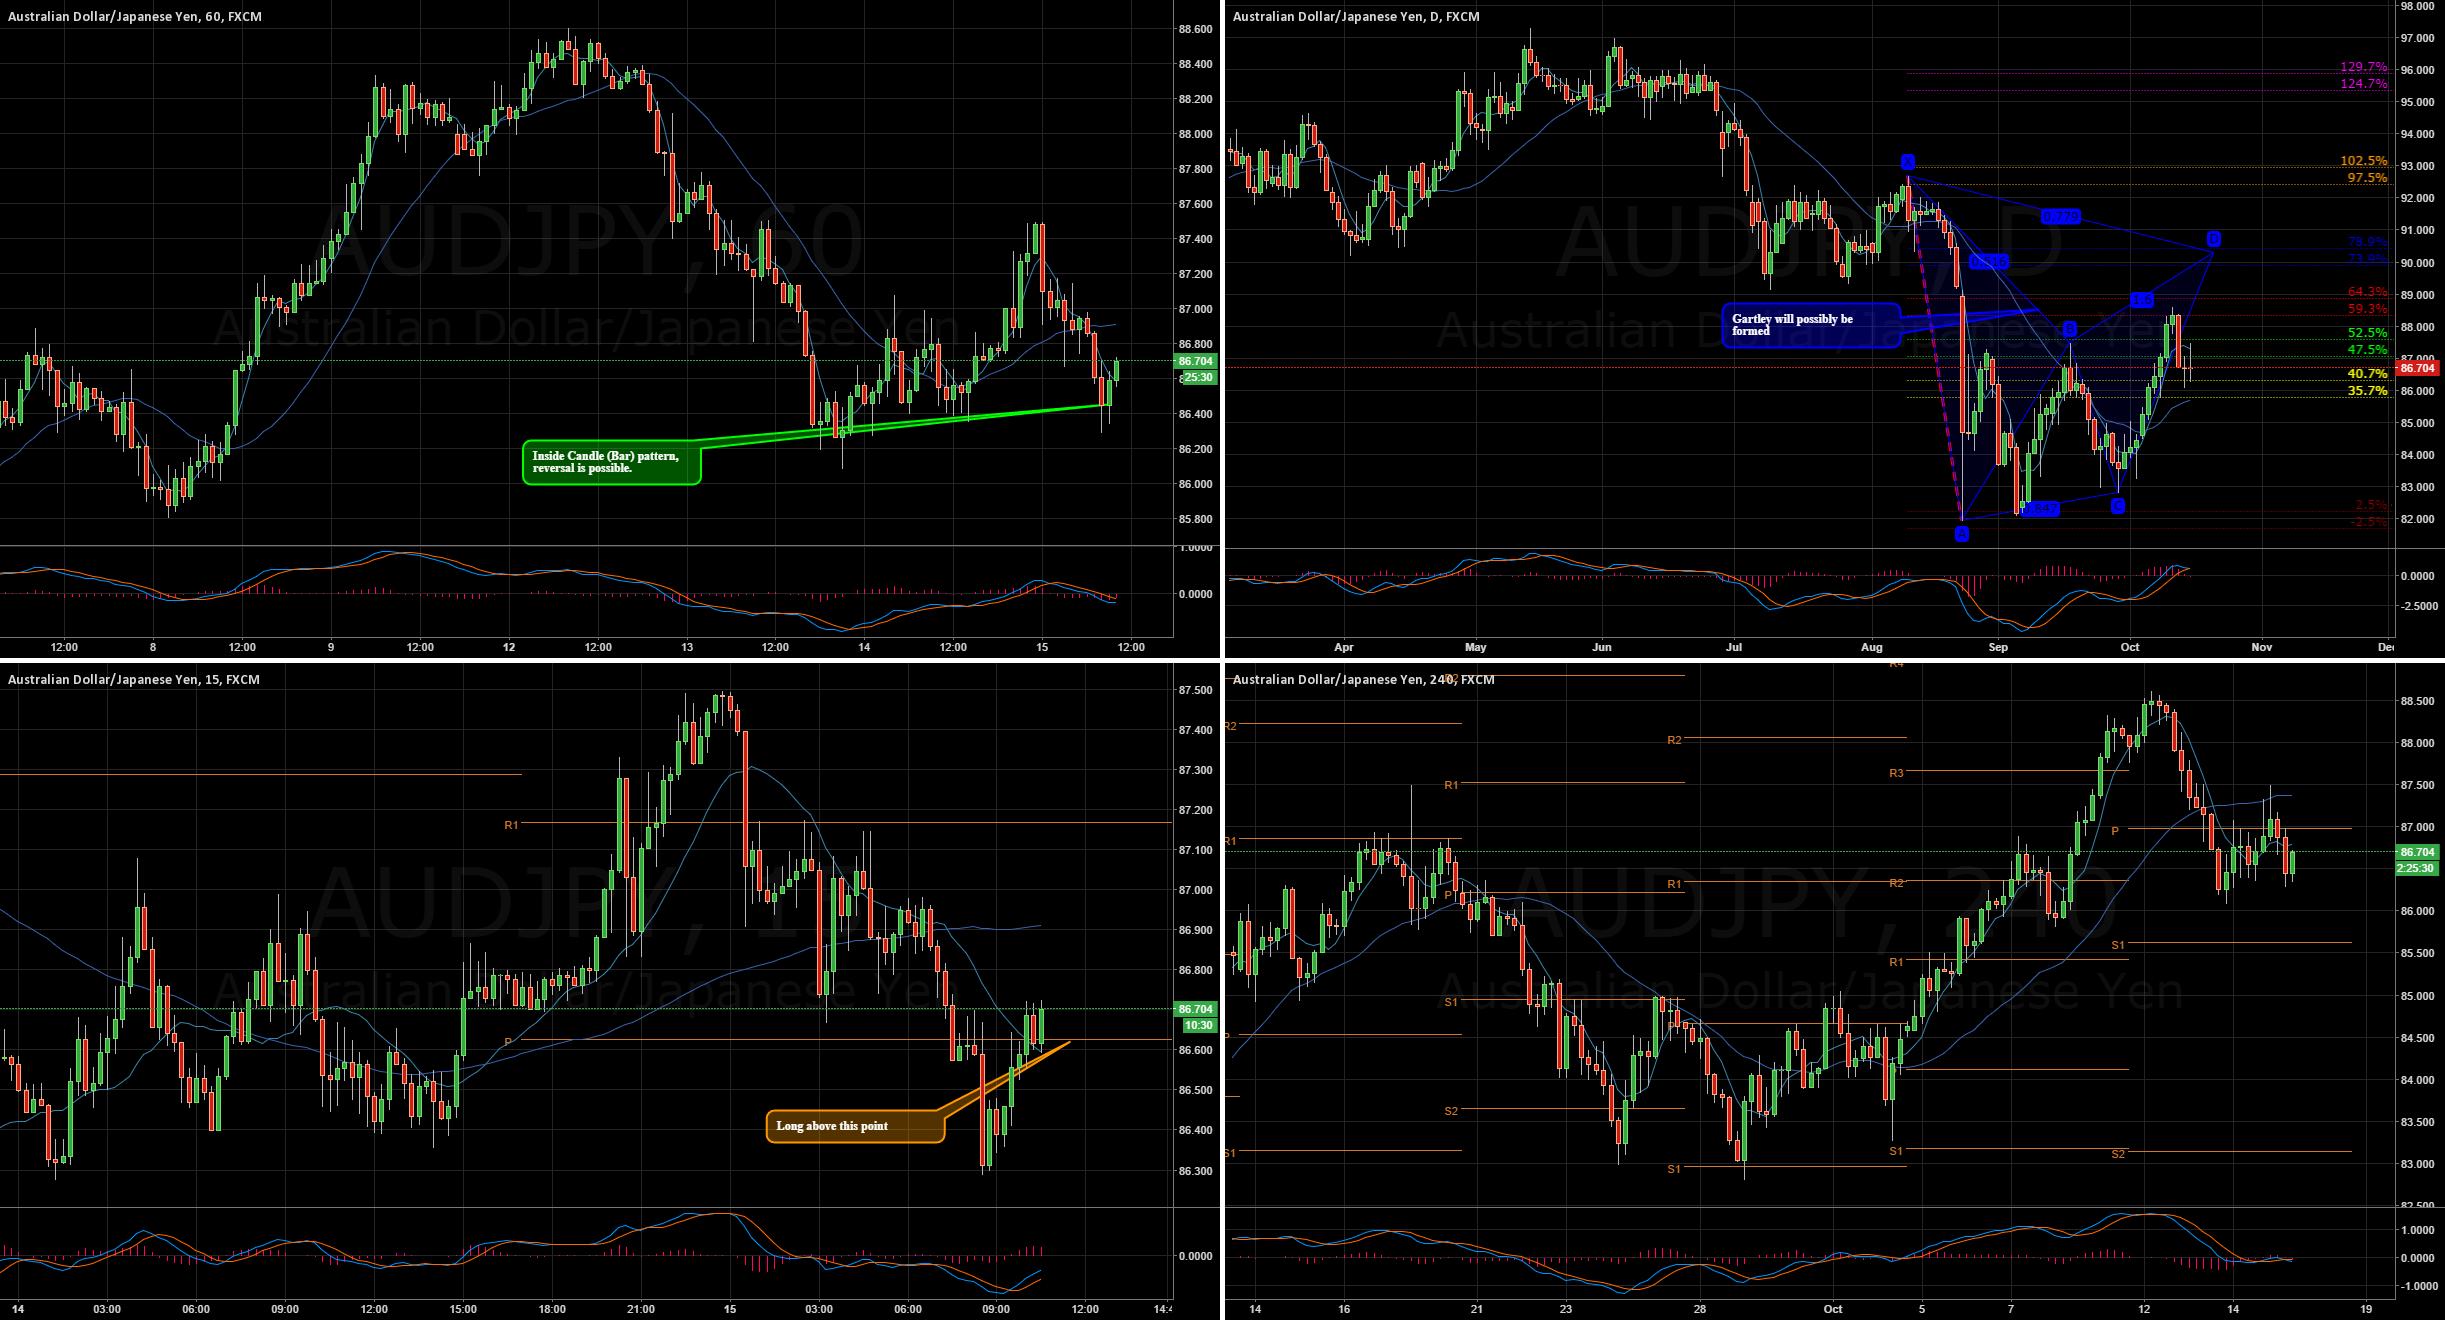 $AUDJPY The price is showing long oportunities